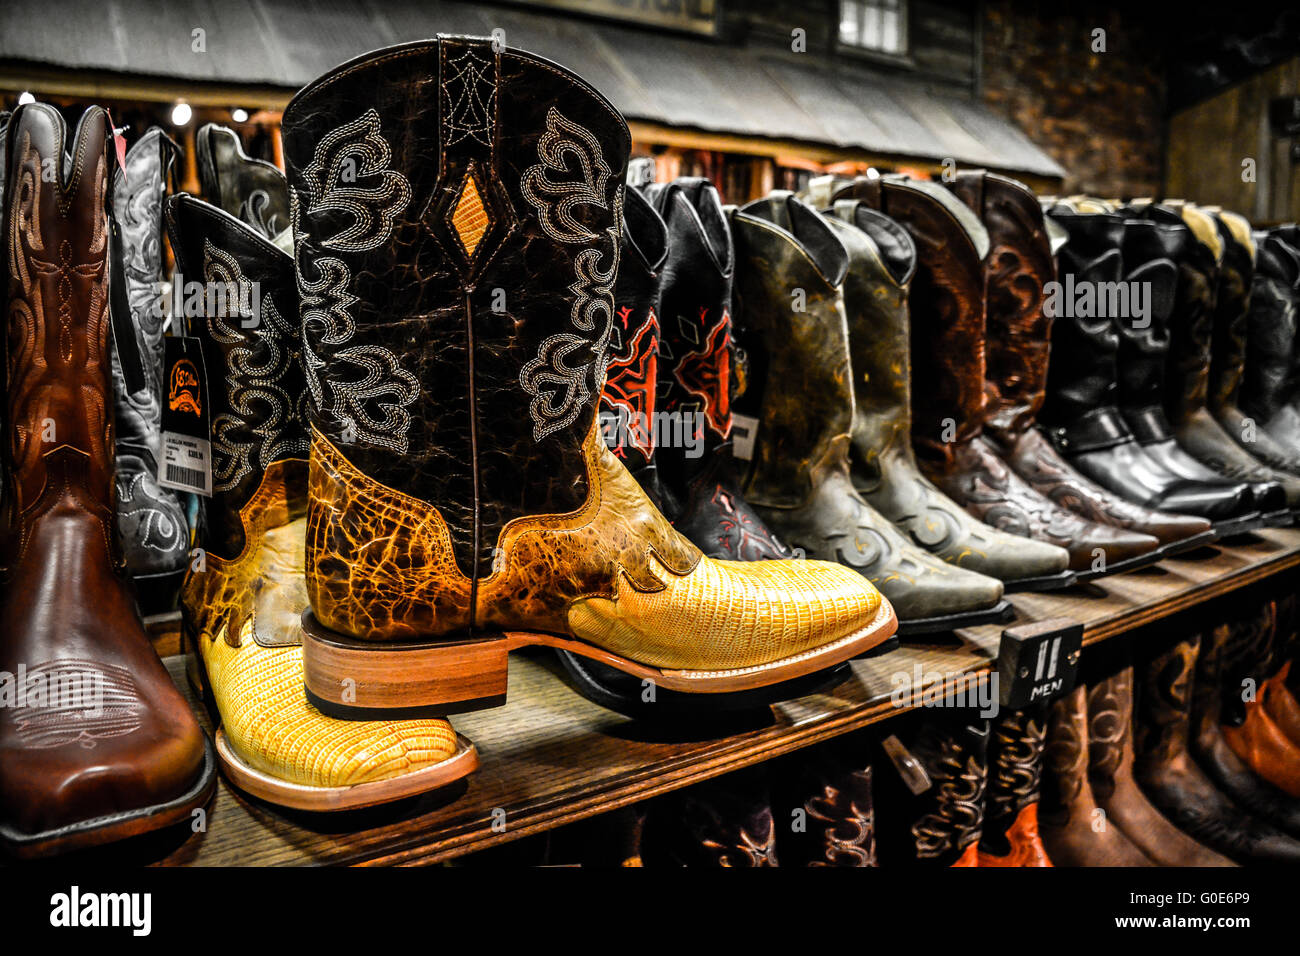 93ca7729884 The Nashville Cowboy boot store has rows of unique Cowboy boots for sale in  the downtown entertainment district in Nashville TN